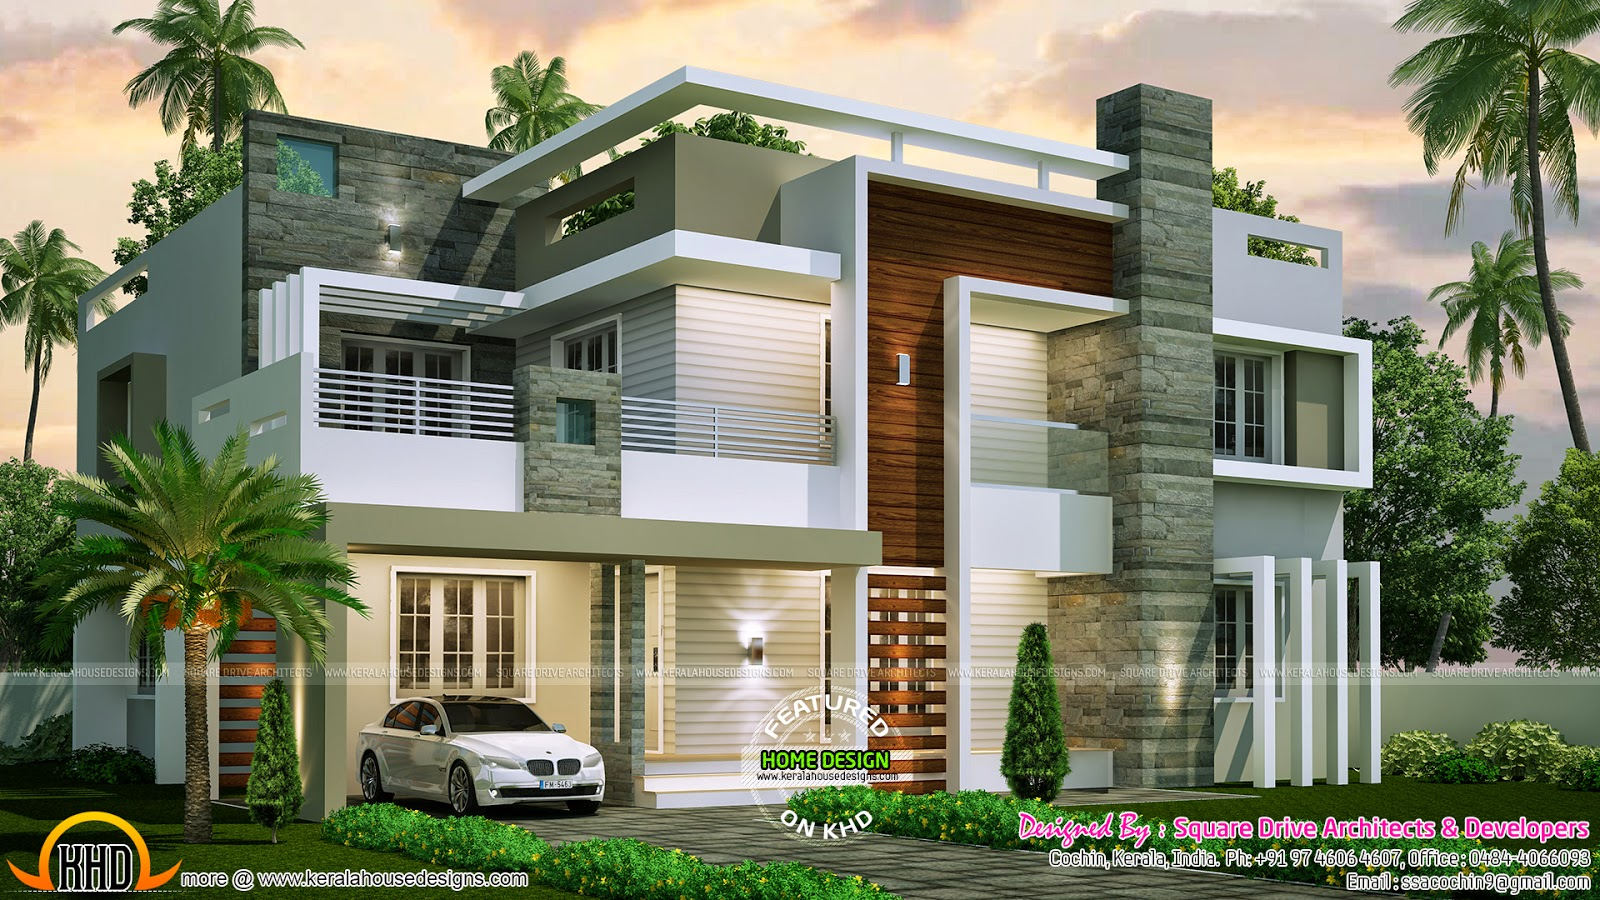 4 bedroom contemporary home design kerala home design for House plans and designs